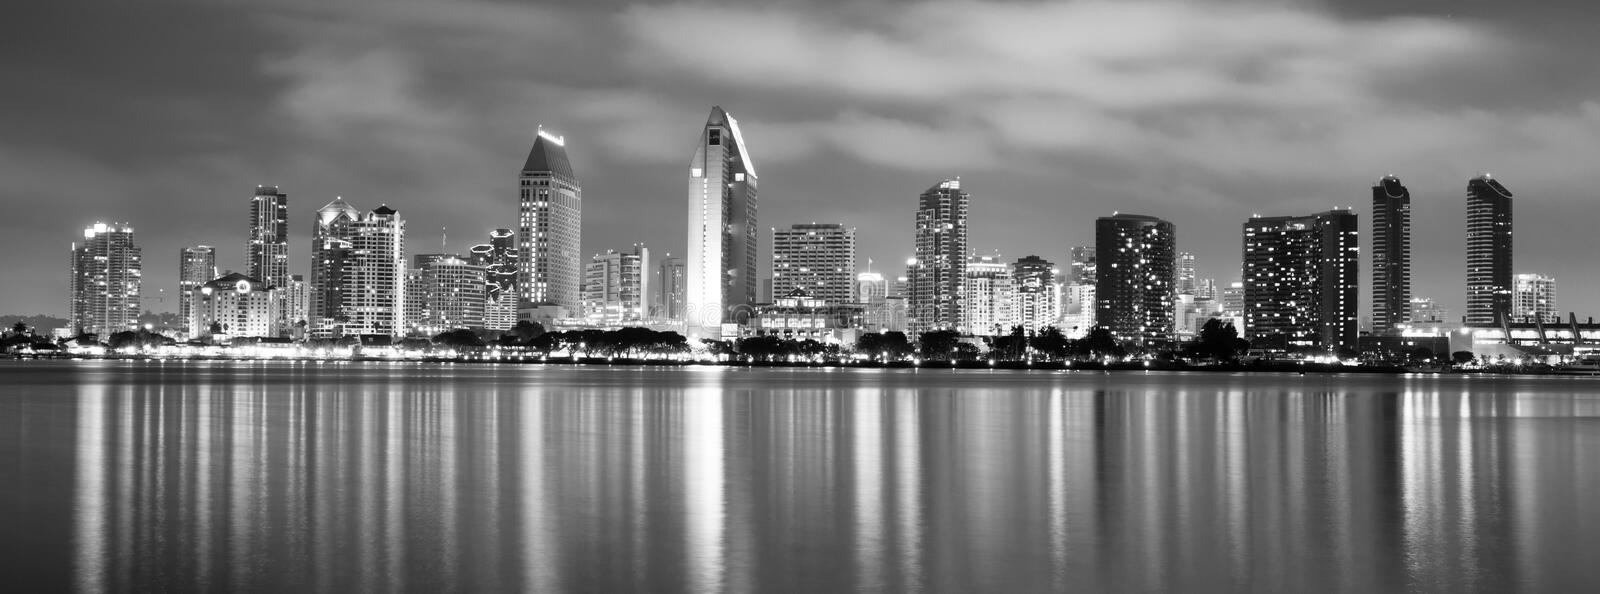 Late Night Coronado San Diego Bay Downtown City Skyline. Clouds look ominous over San Diego, California royalty free stock photo